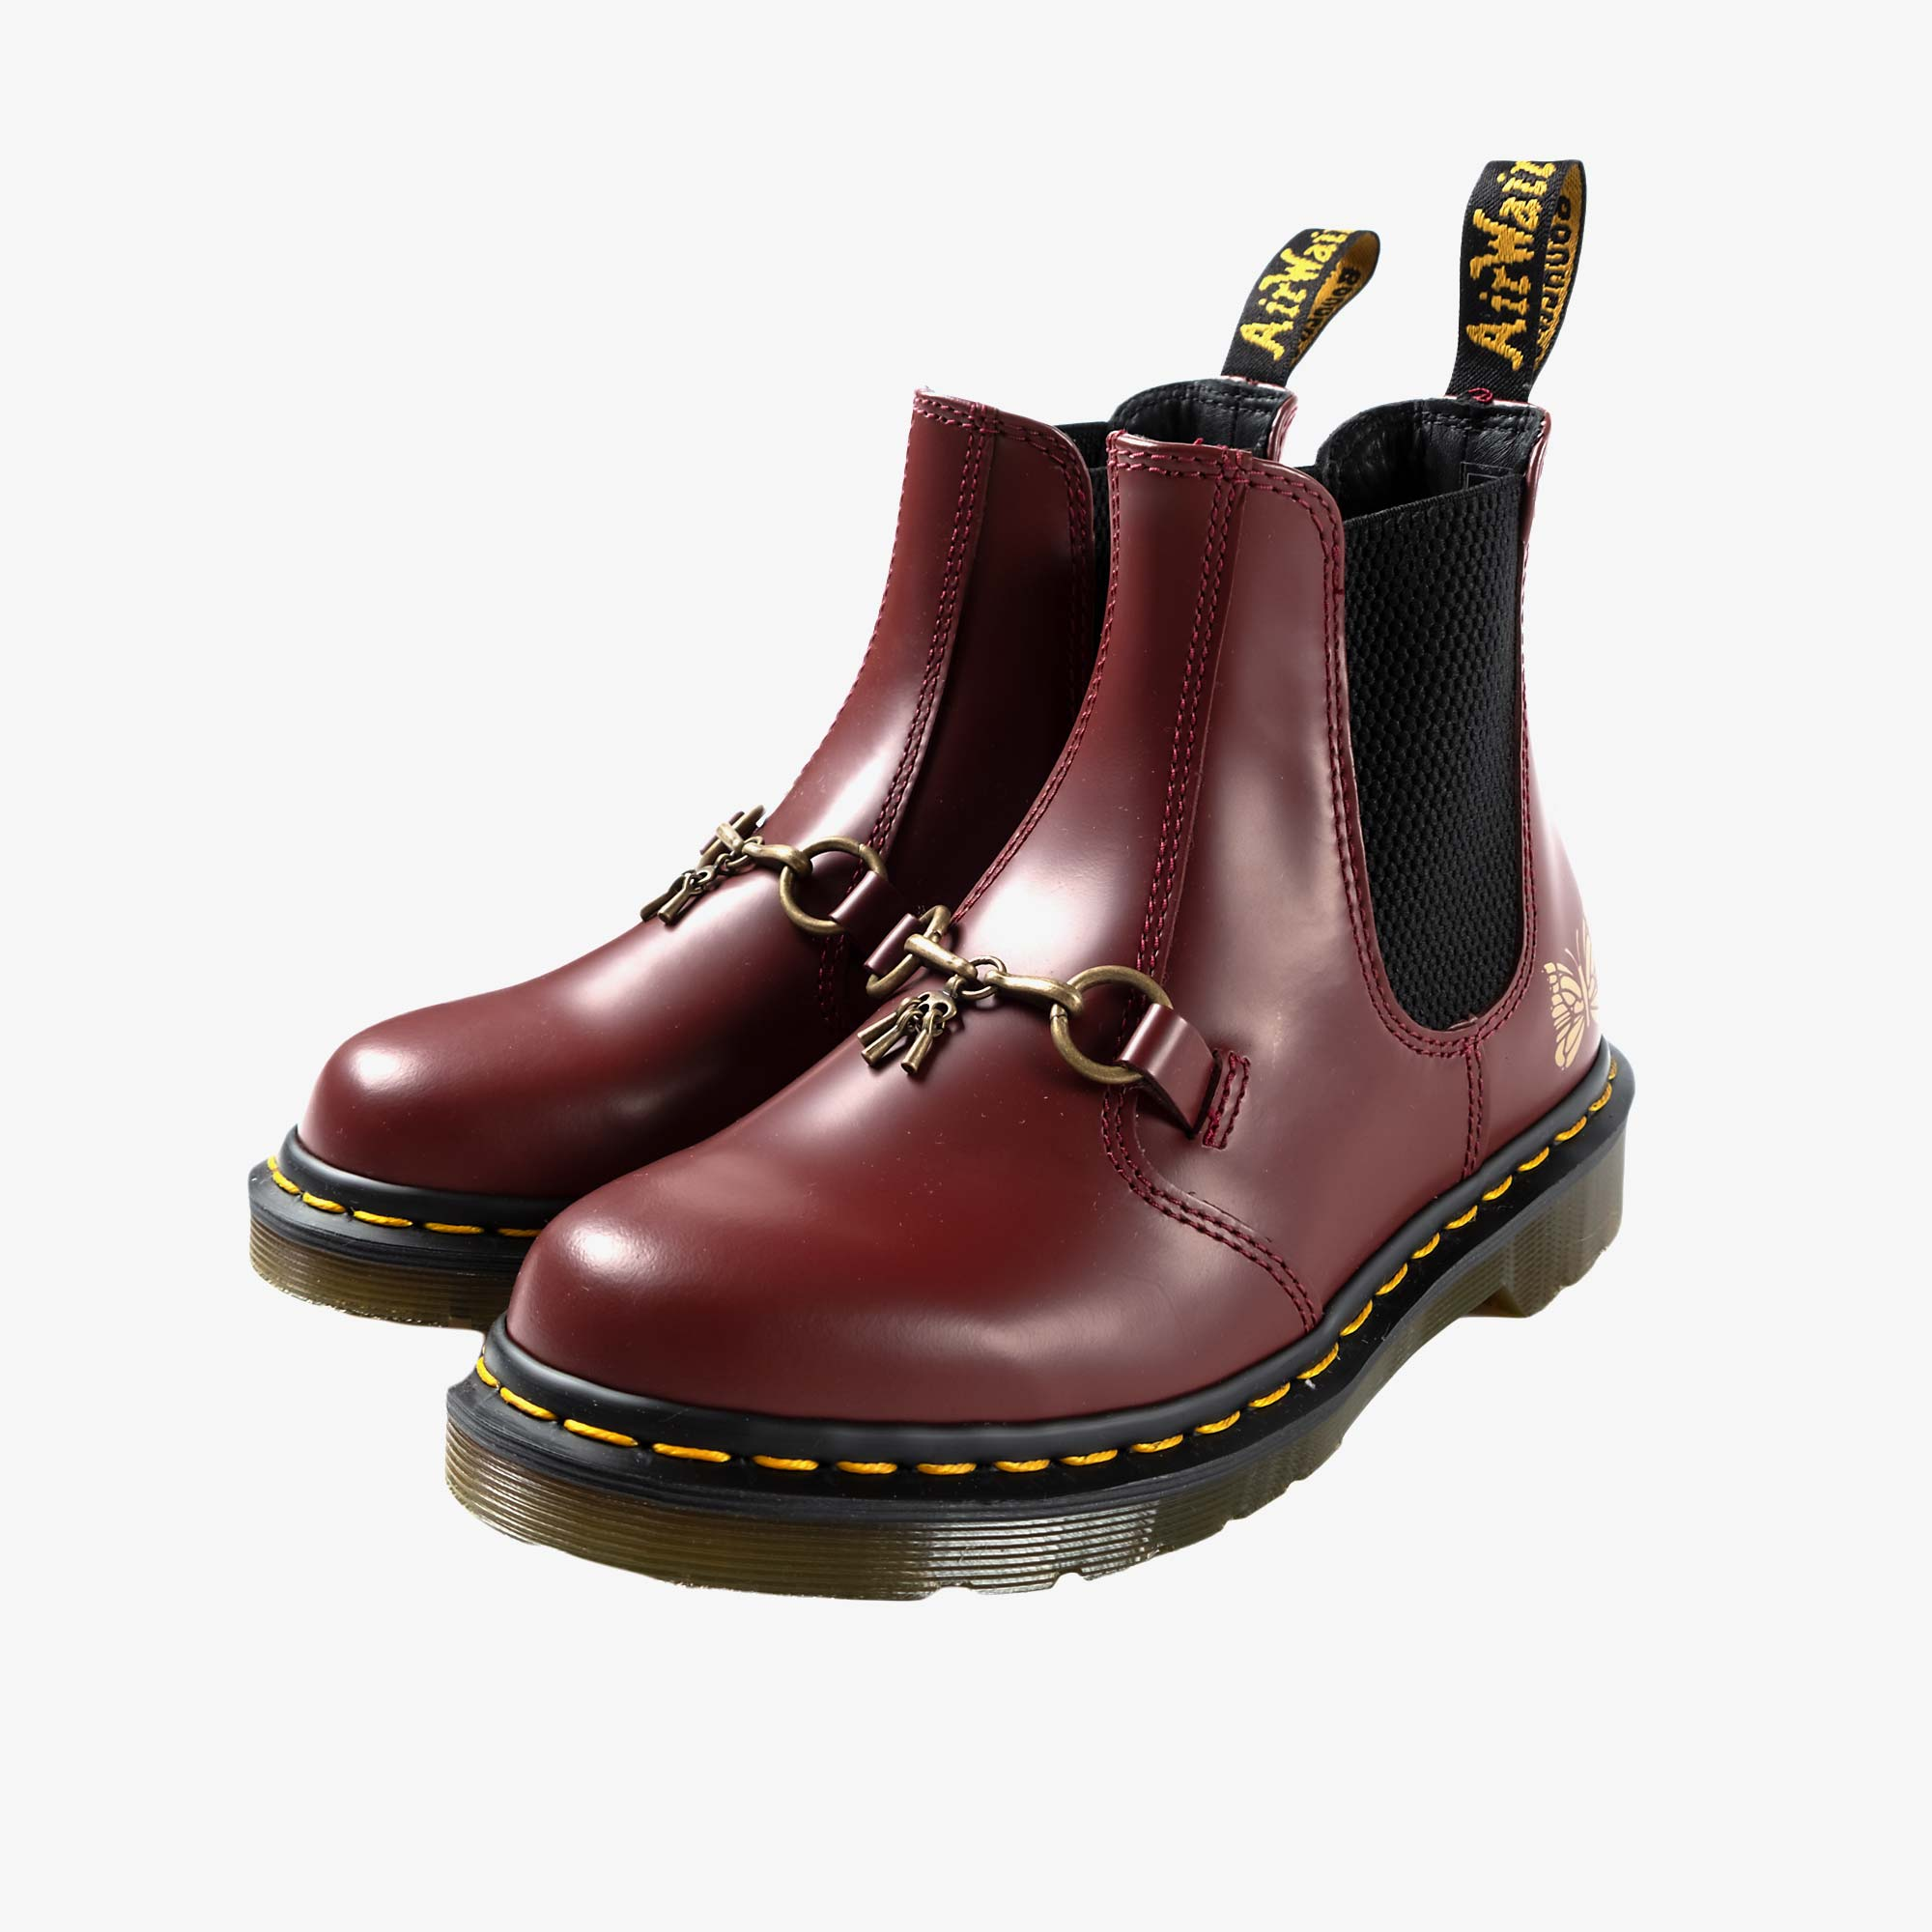 Needles Needles x Dr. Martens 2976 Snaffle - Cherry Red 2